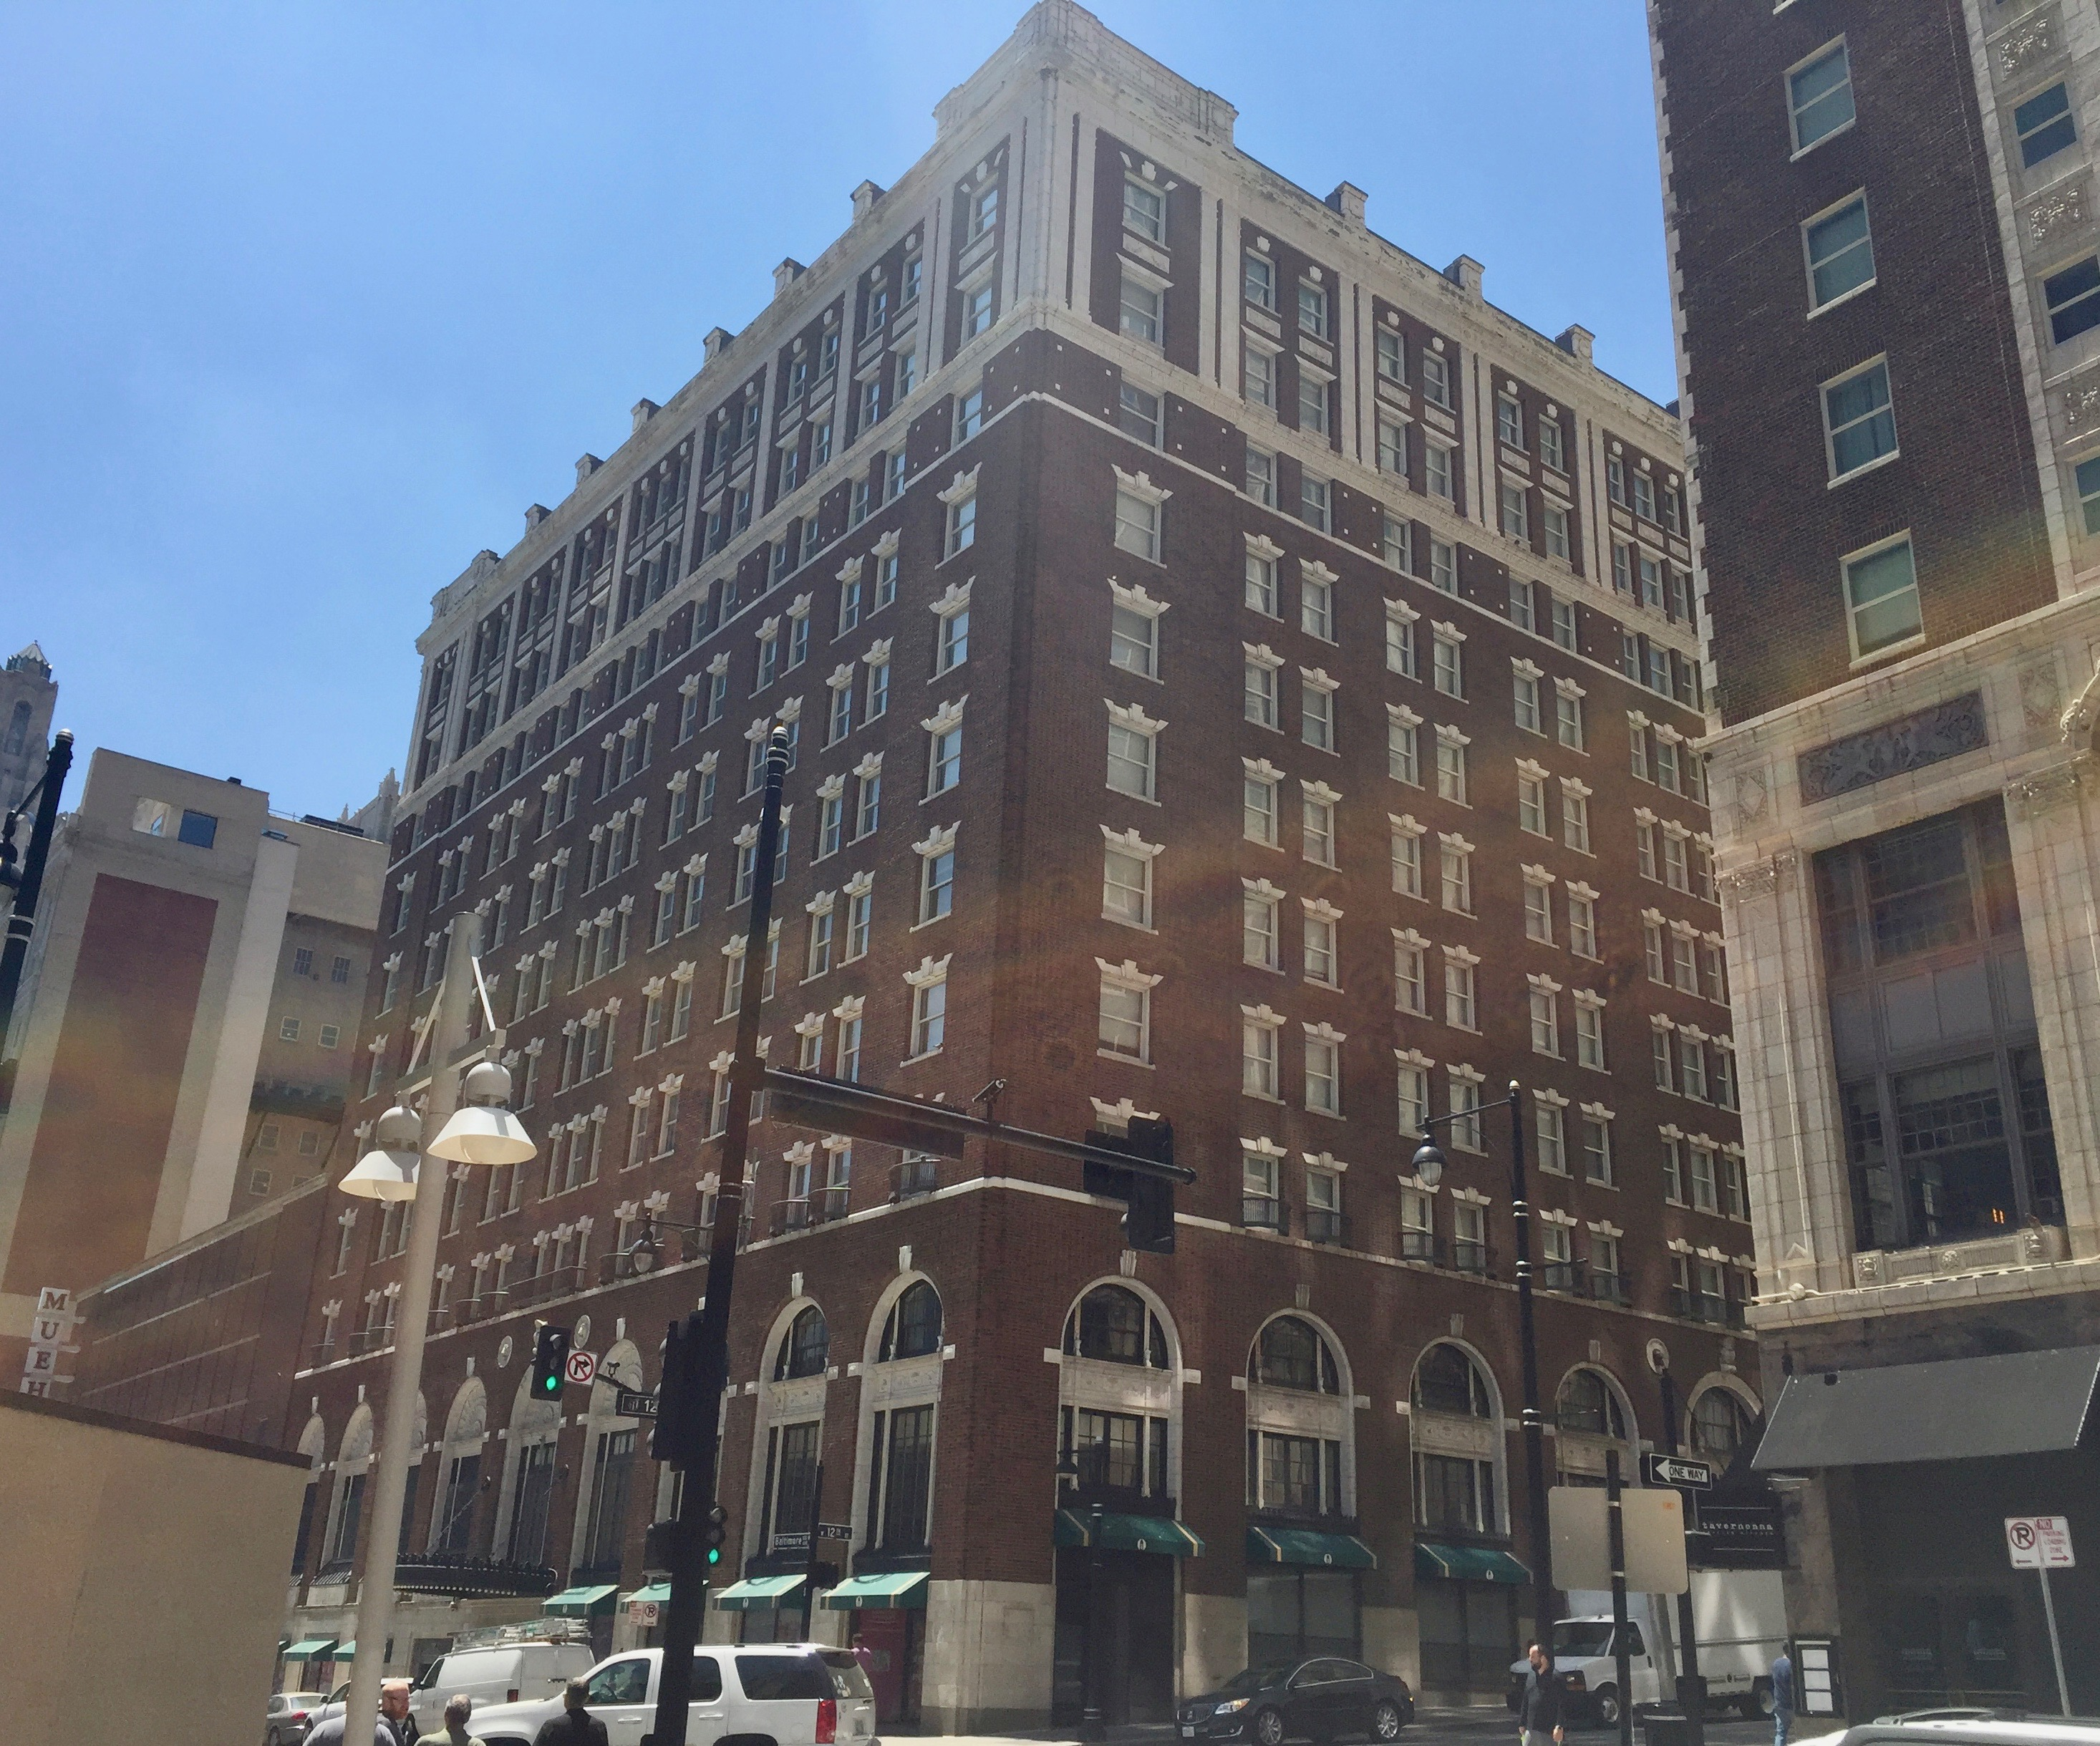 Built in 1915, the Muehlebach was historically one of the most popular hotels in Kansas City and around the world. Image obtained from CityScene KC.